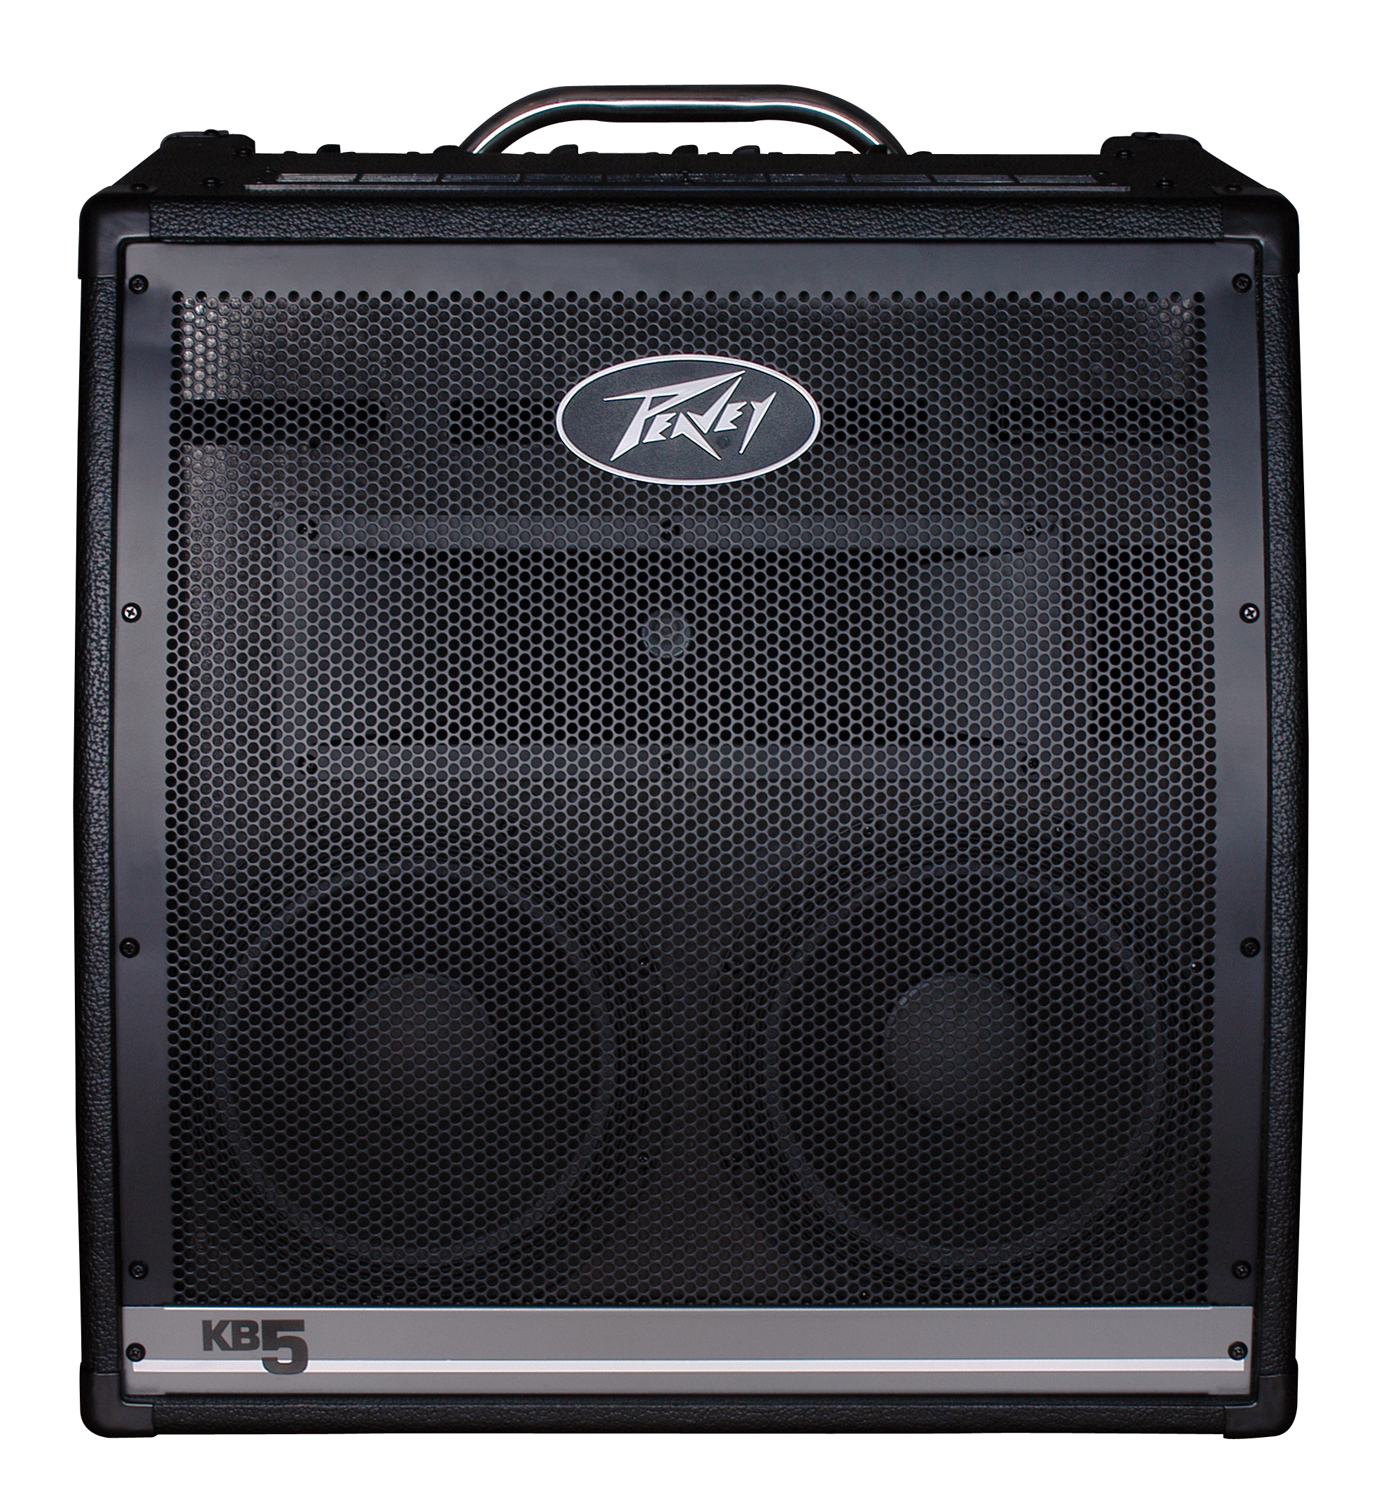 peavey kb 5 pro audio pa system keyboard amplifier with two 10 39 speakers horn pev13 573260. Black Bedroom Furniture Sets. Home Design Ideas